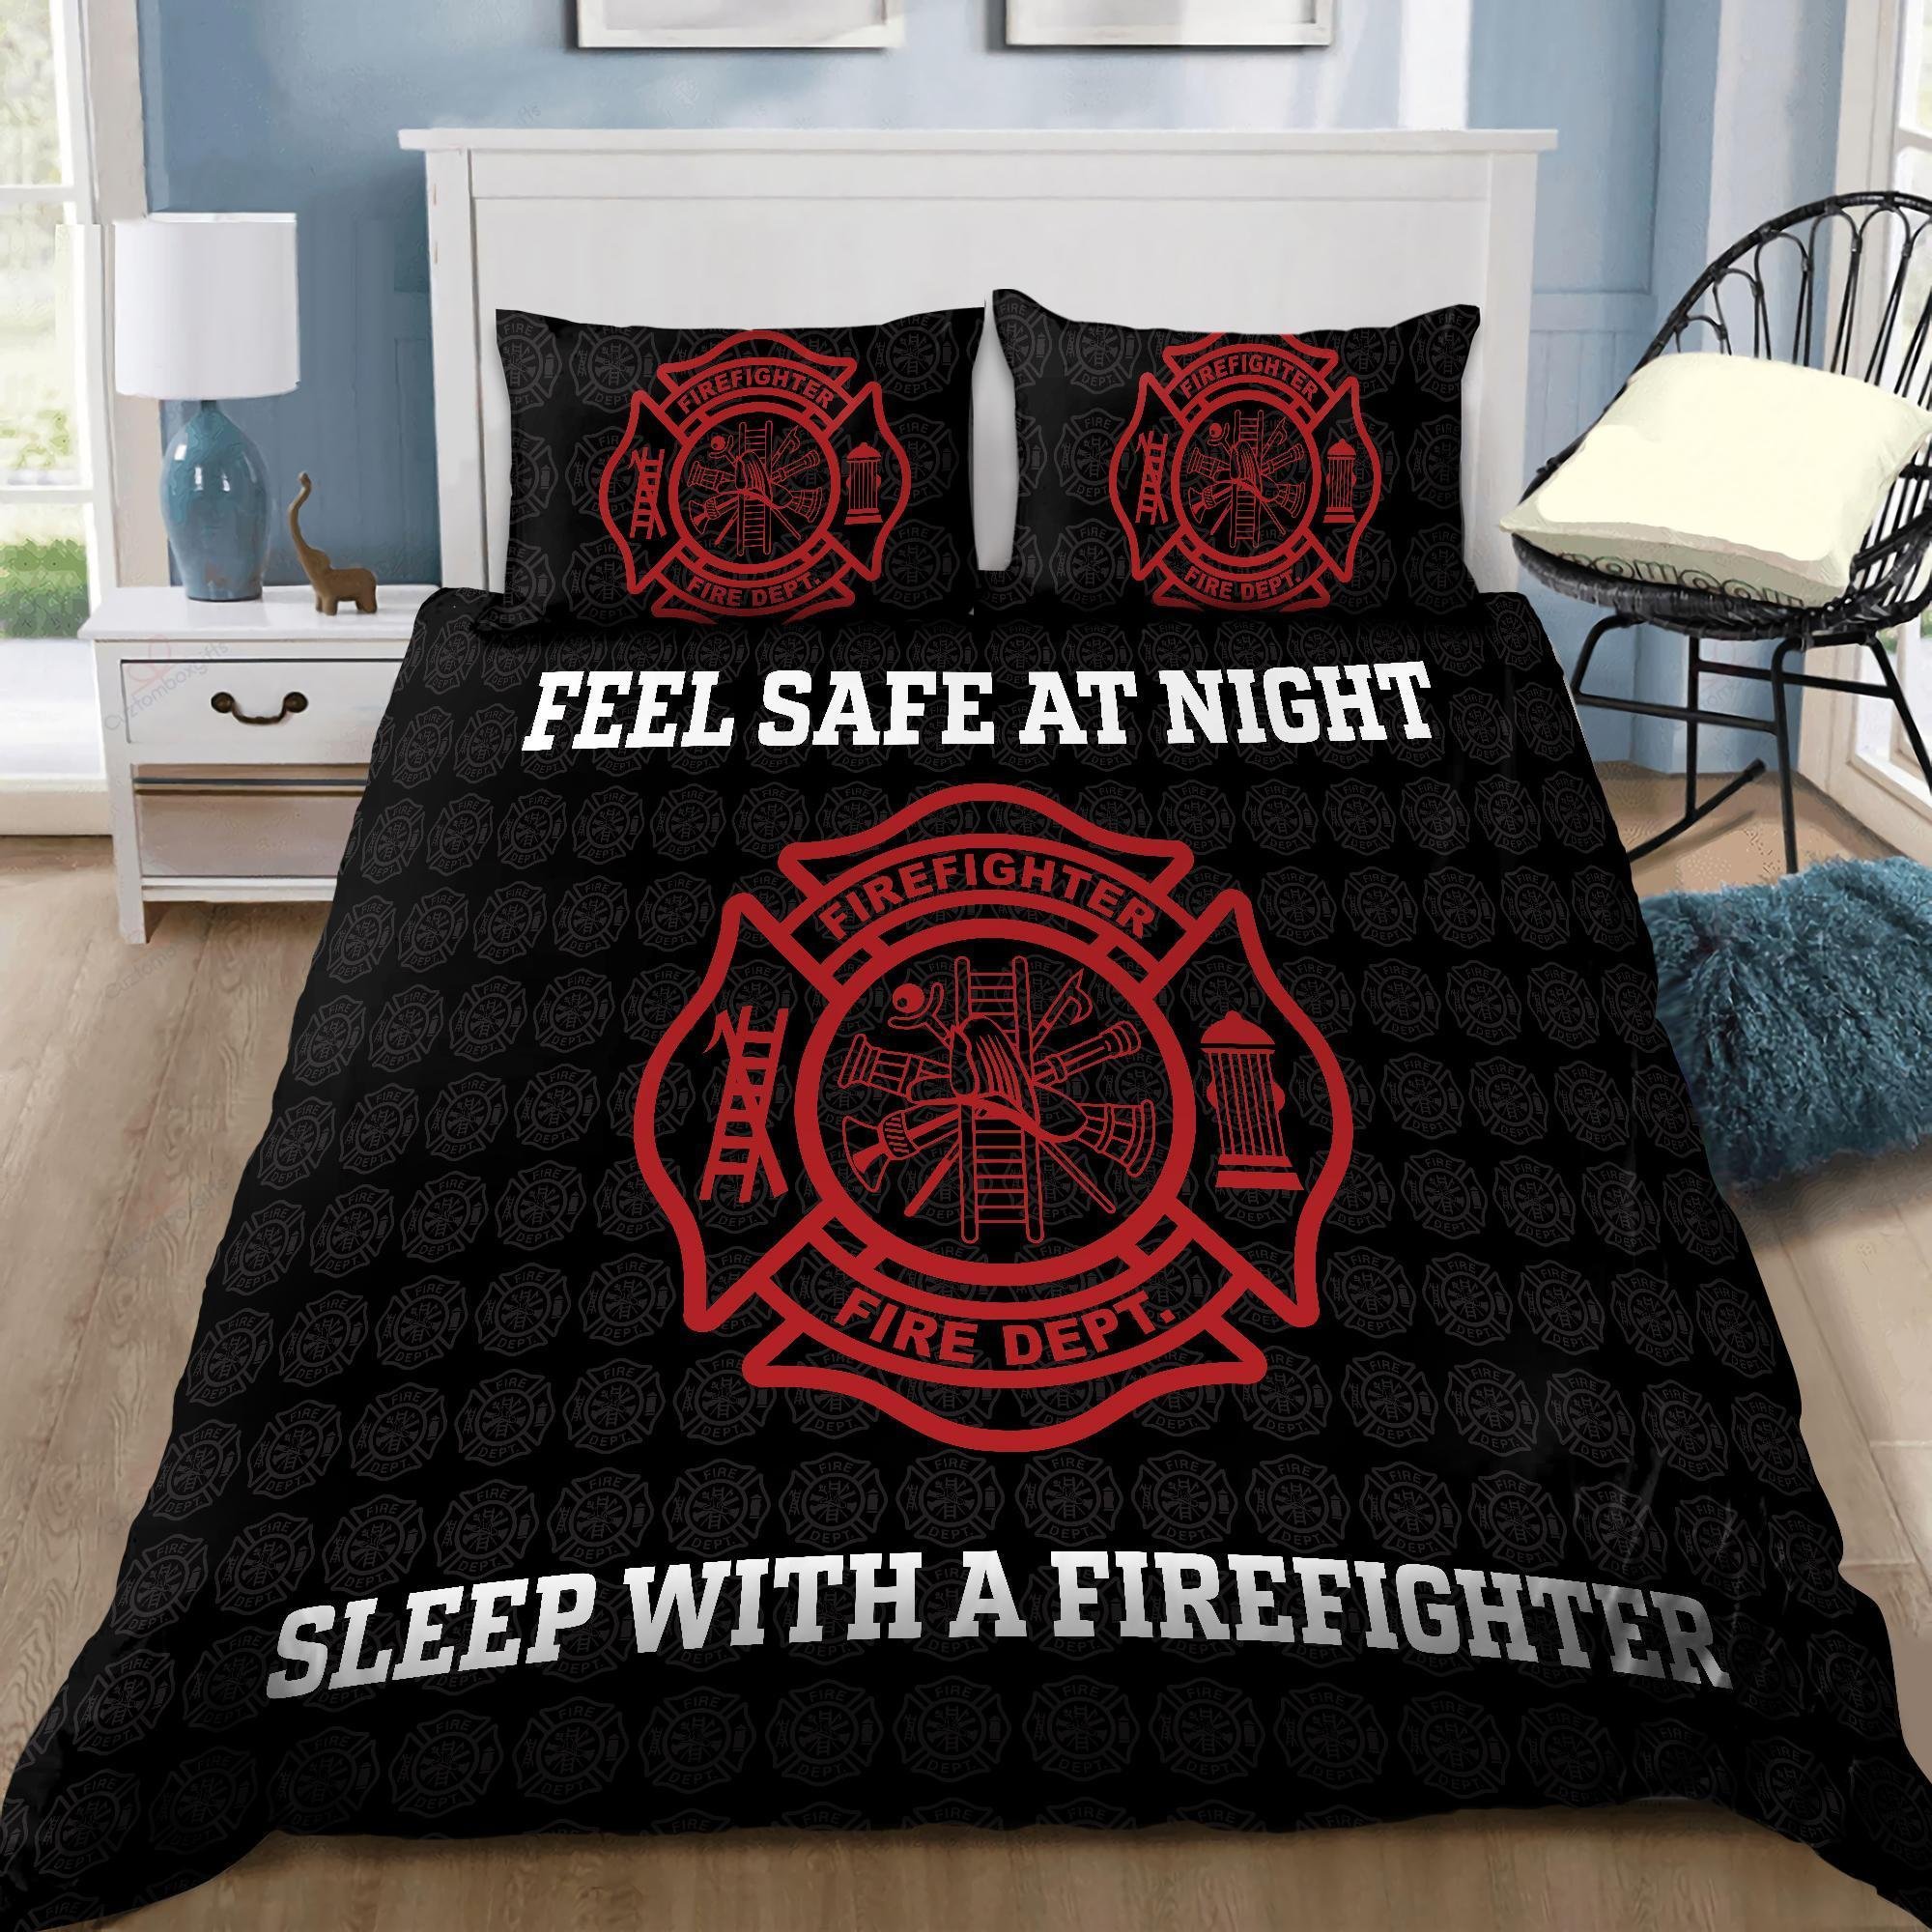 Feeling Safe With Firefighter Bedding Set DQB08042003-TQH